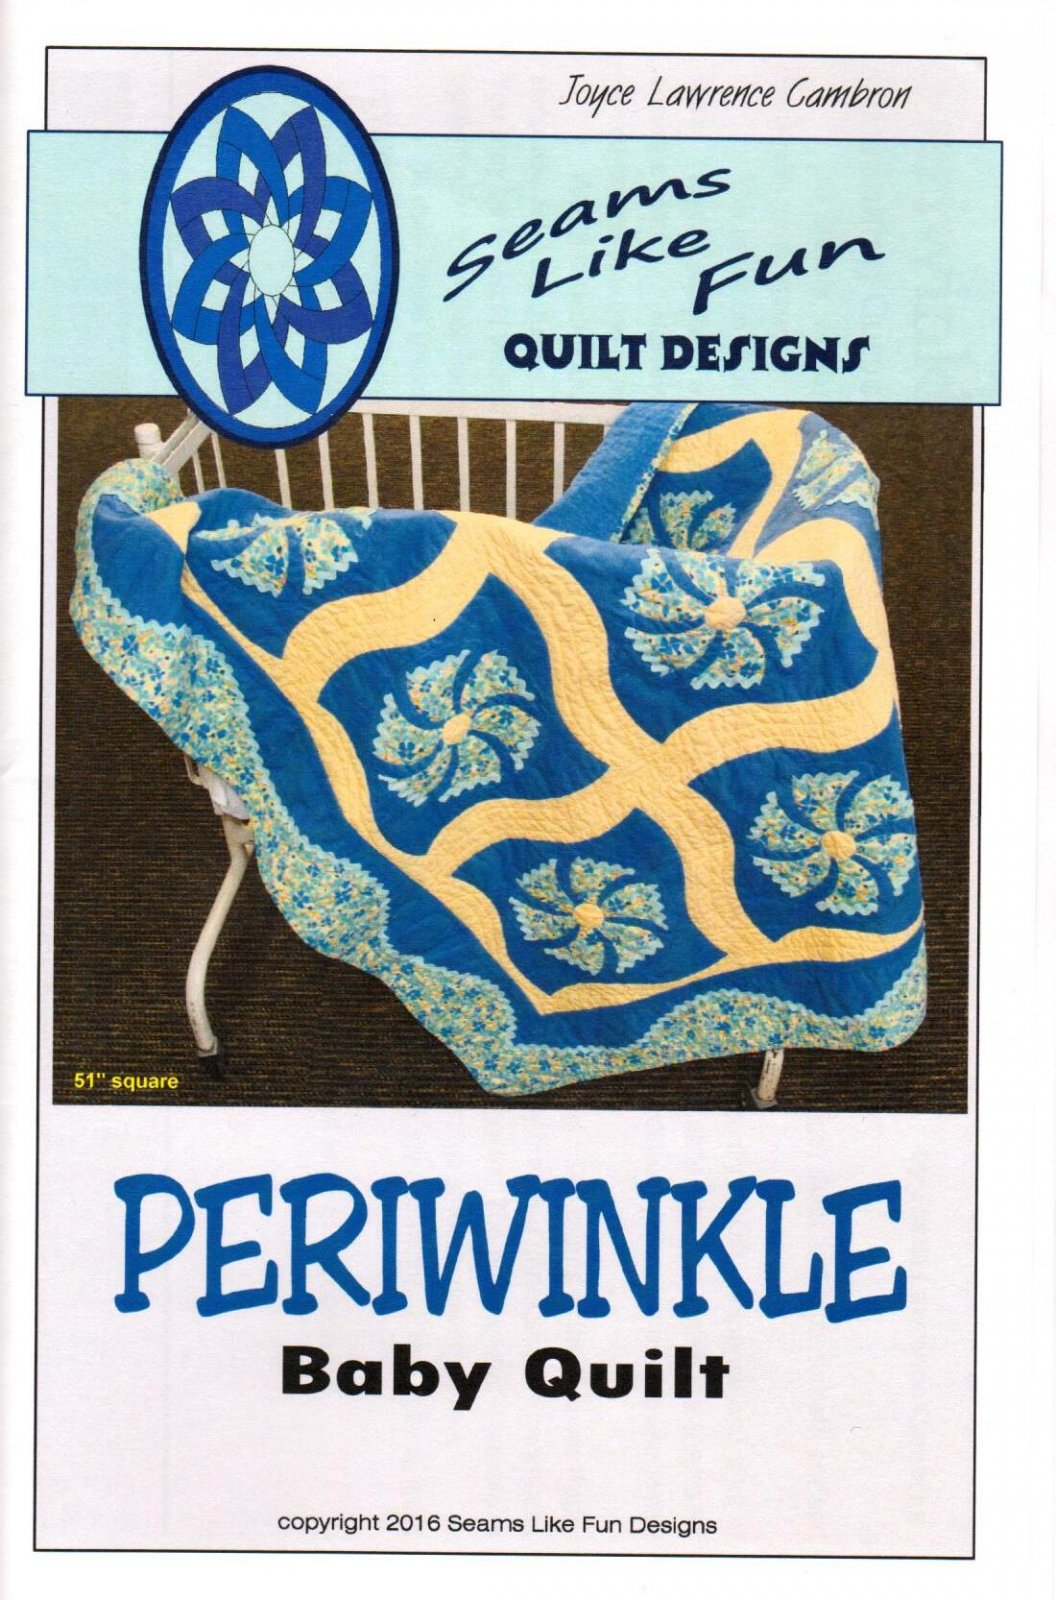 Periwinkle Baby Quilt